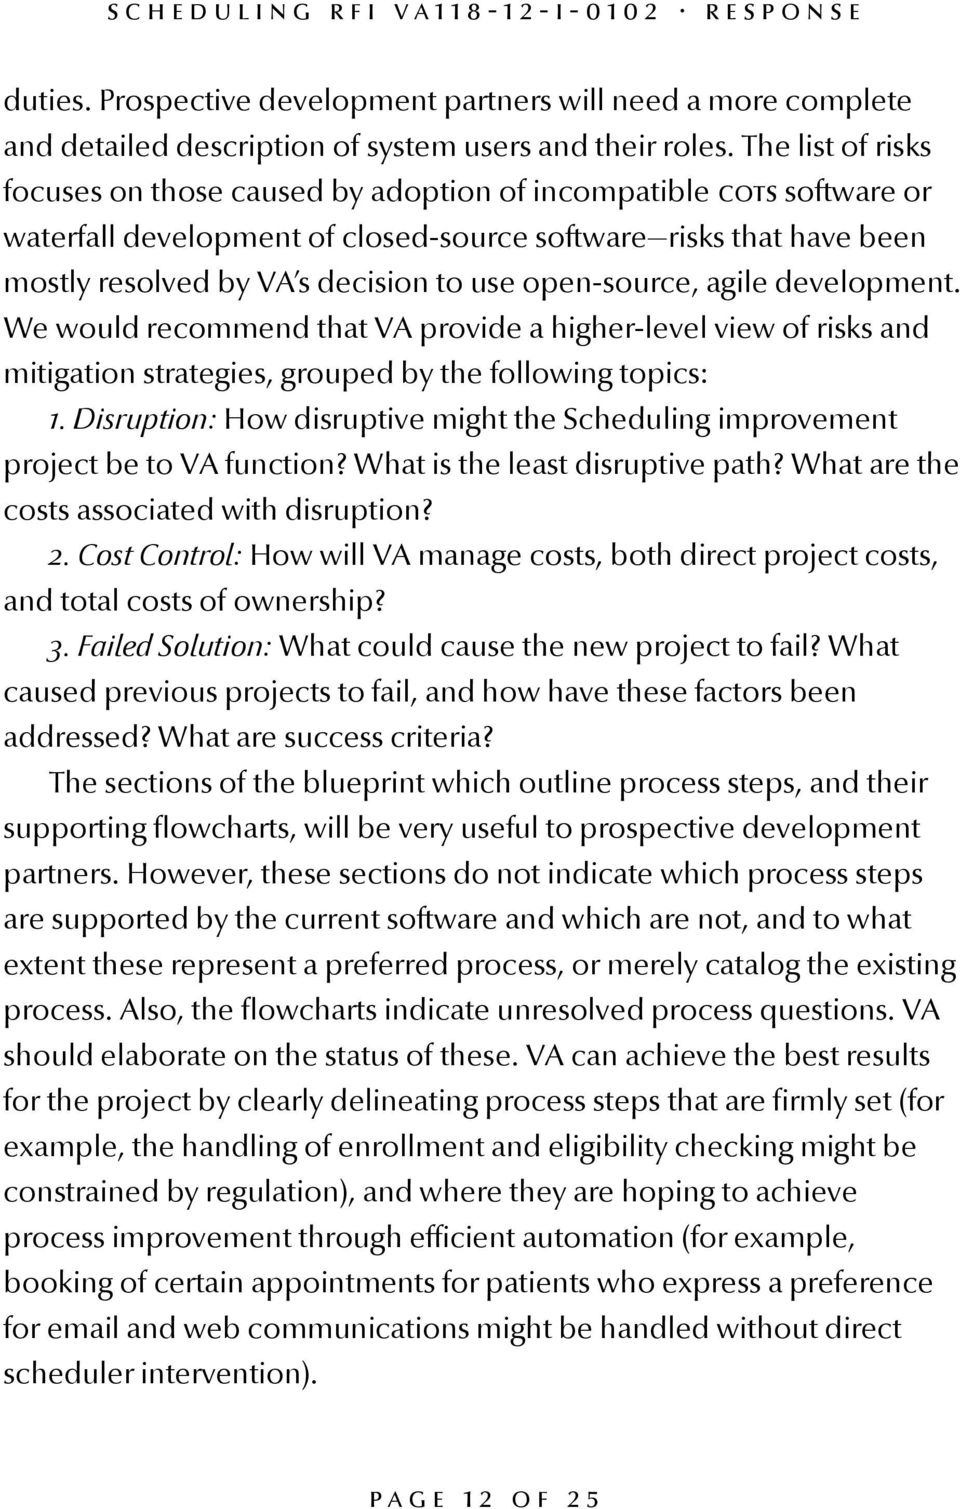 open-source, agile development. We would recommend that VA provide a higher-level view of risks and mitigation strategies, grouped by the following topics: 1.